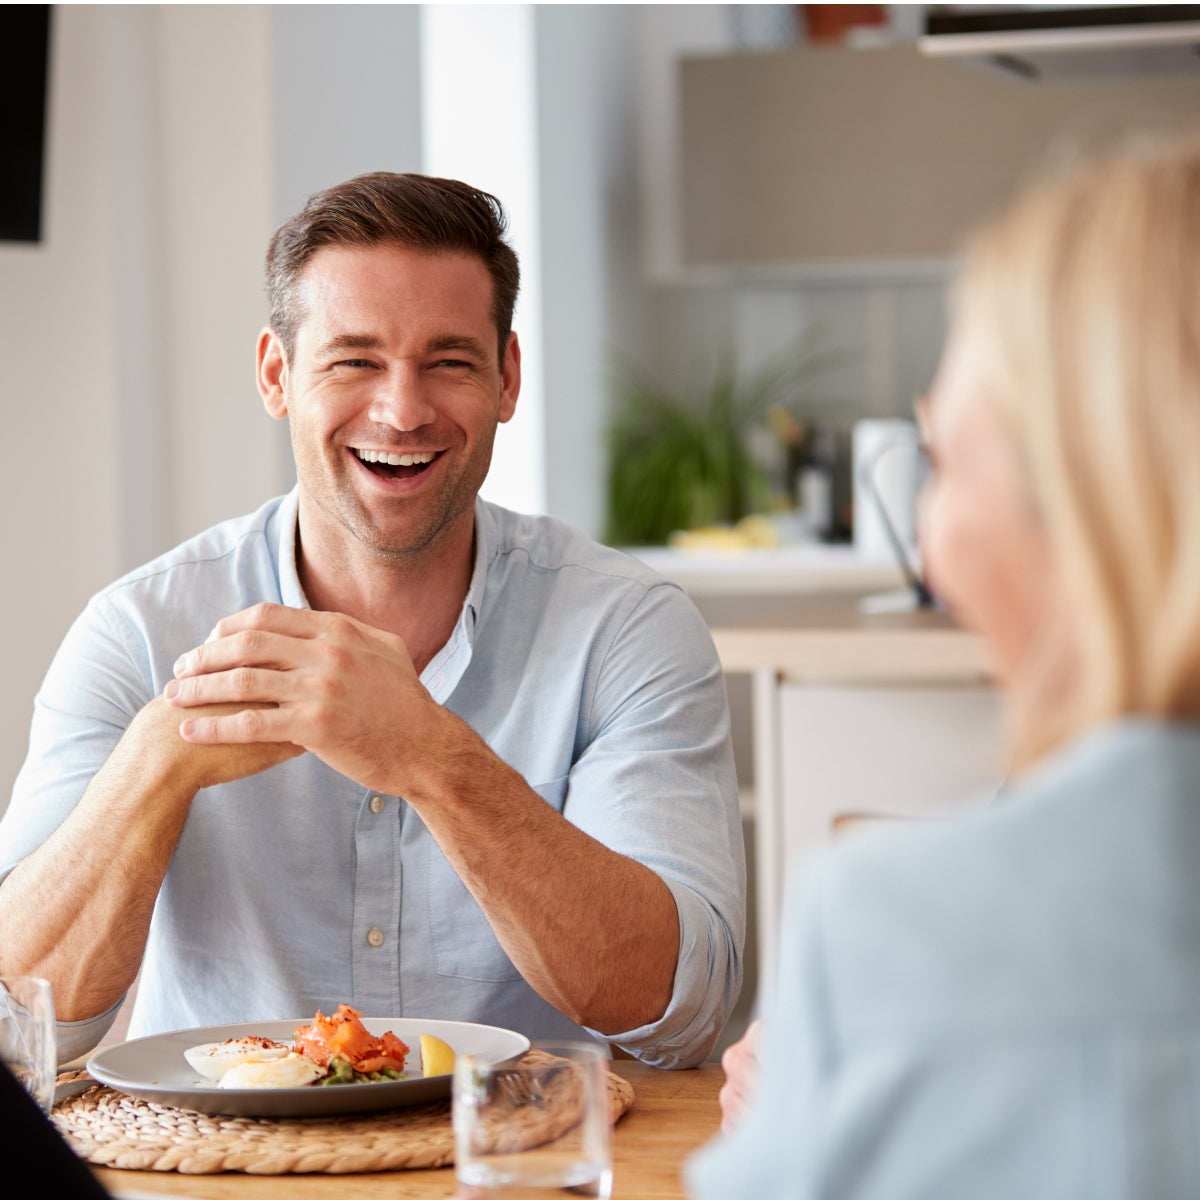 adult man smiling at senior woman